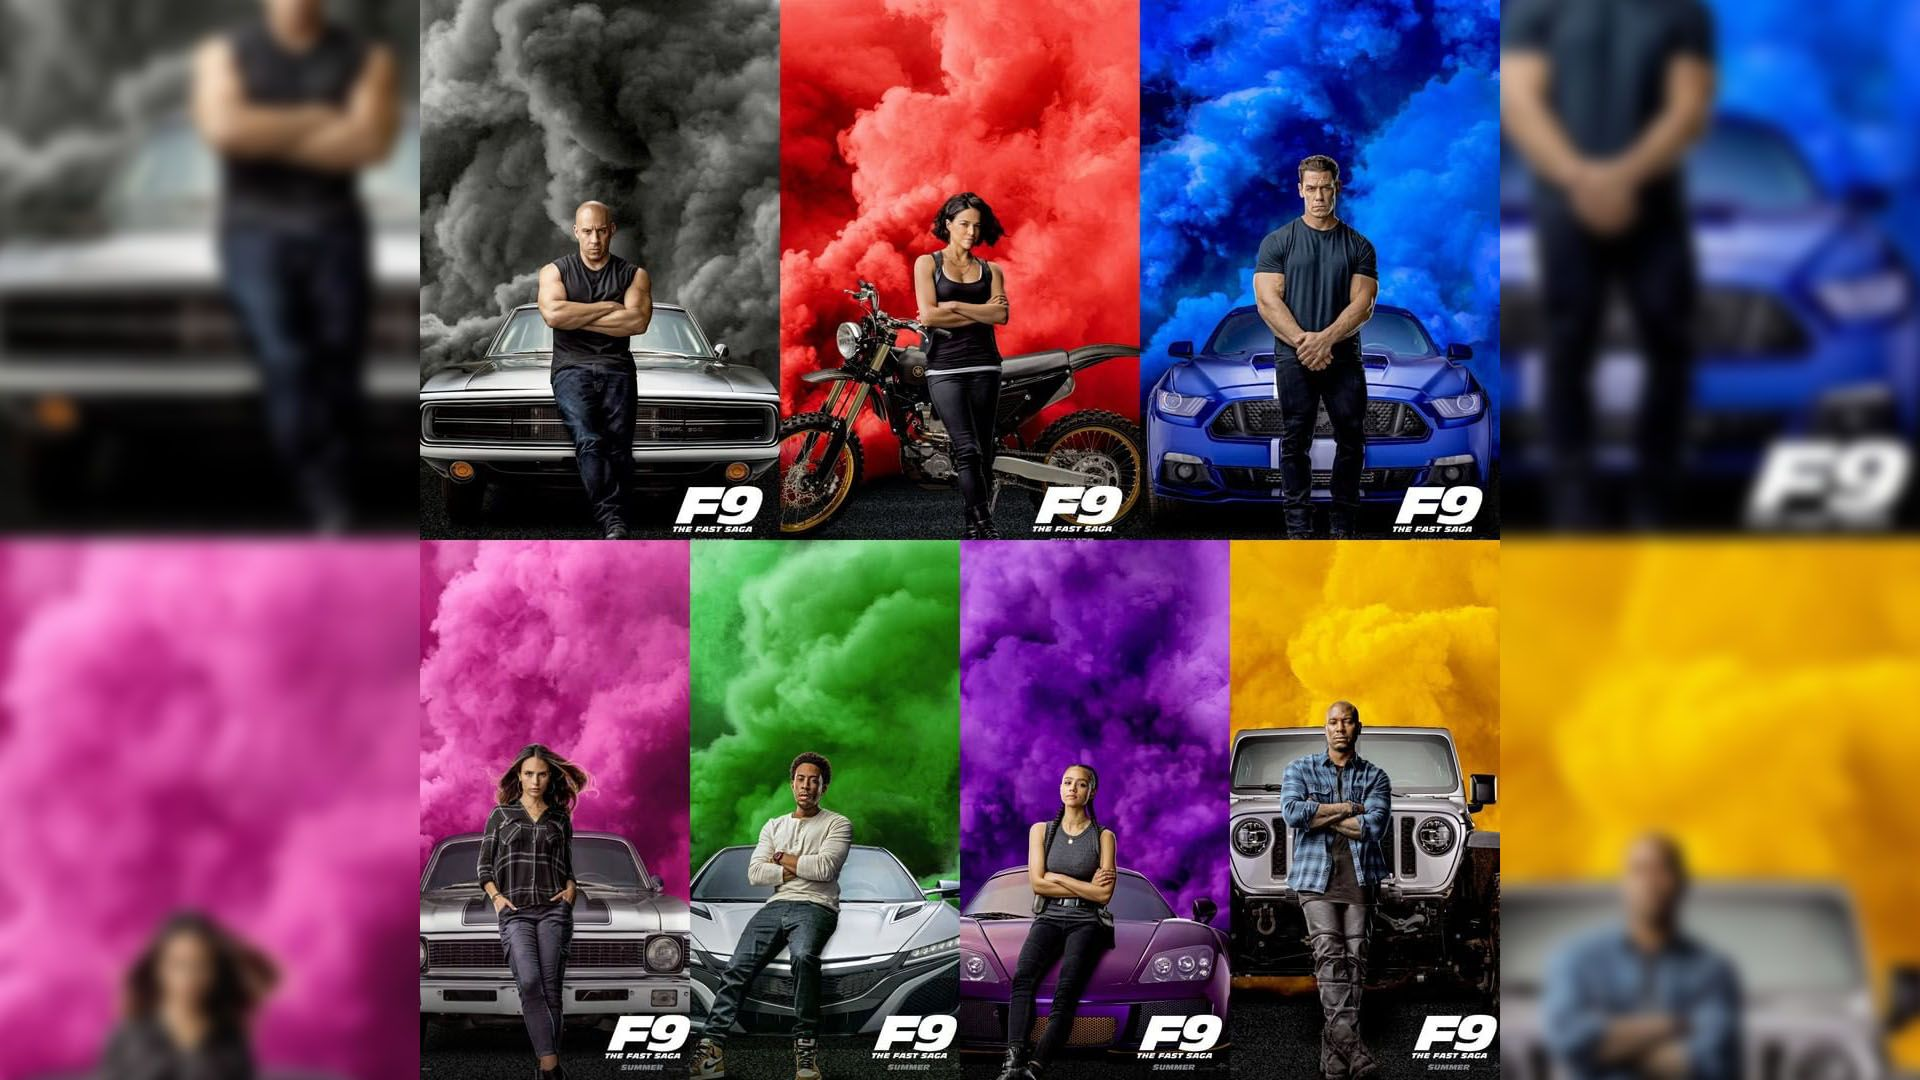 [50] Fast and Furious 9 Review John Cena has Finally Turned 1920x1080